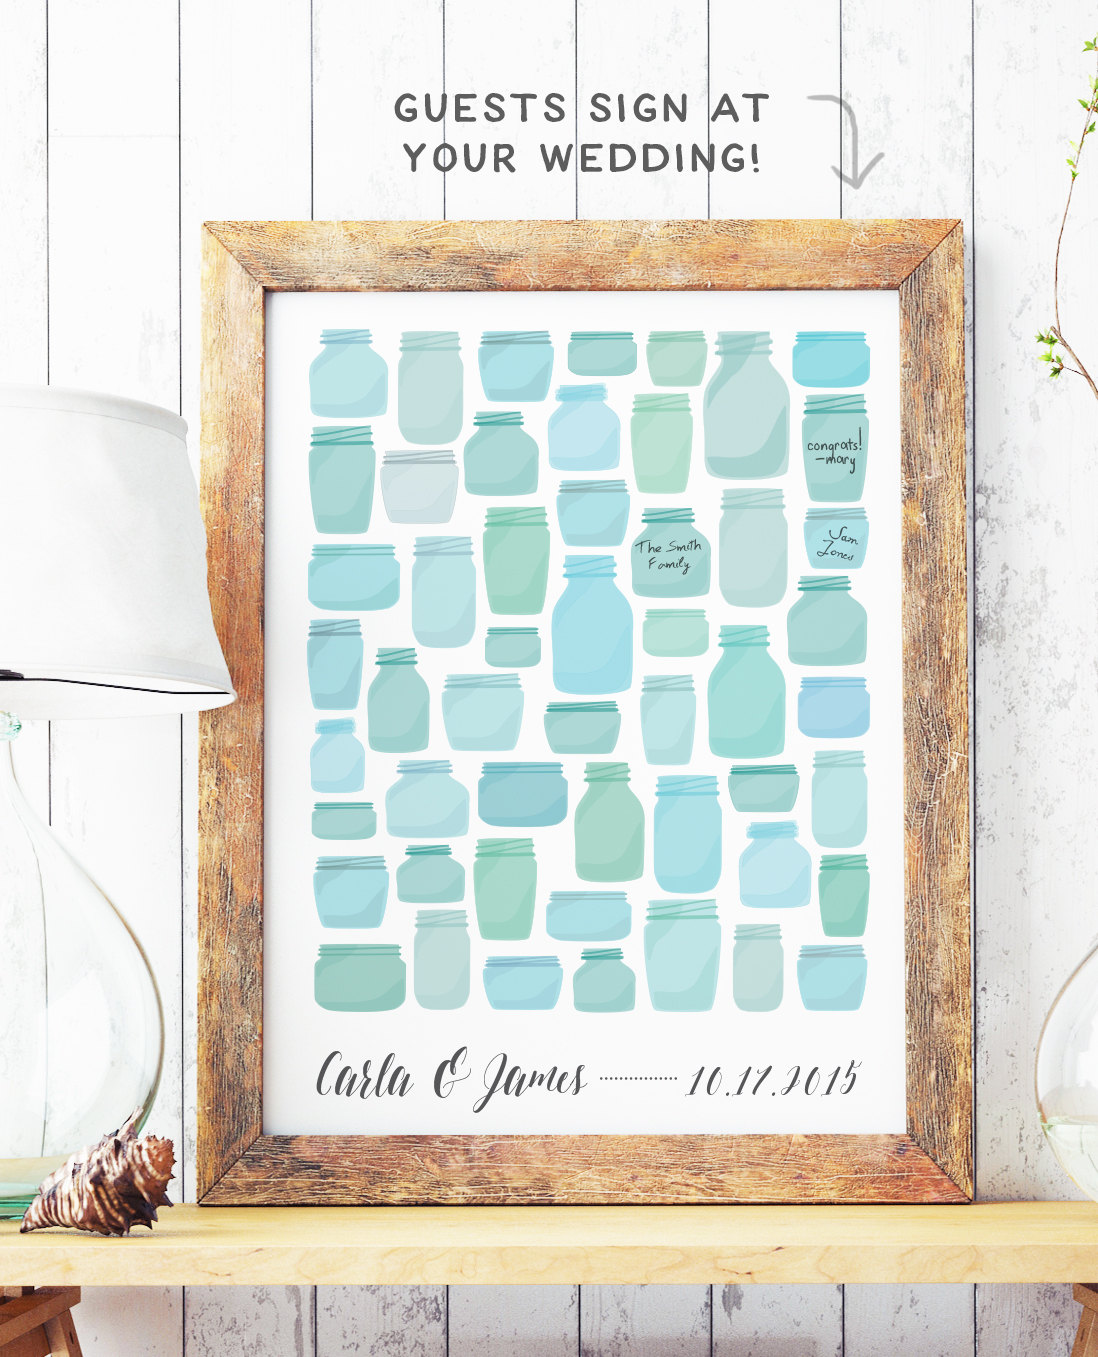 Creative Guest Book Alternatives From Etsy The Budget Savvy Bride